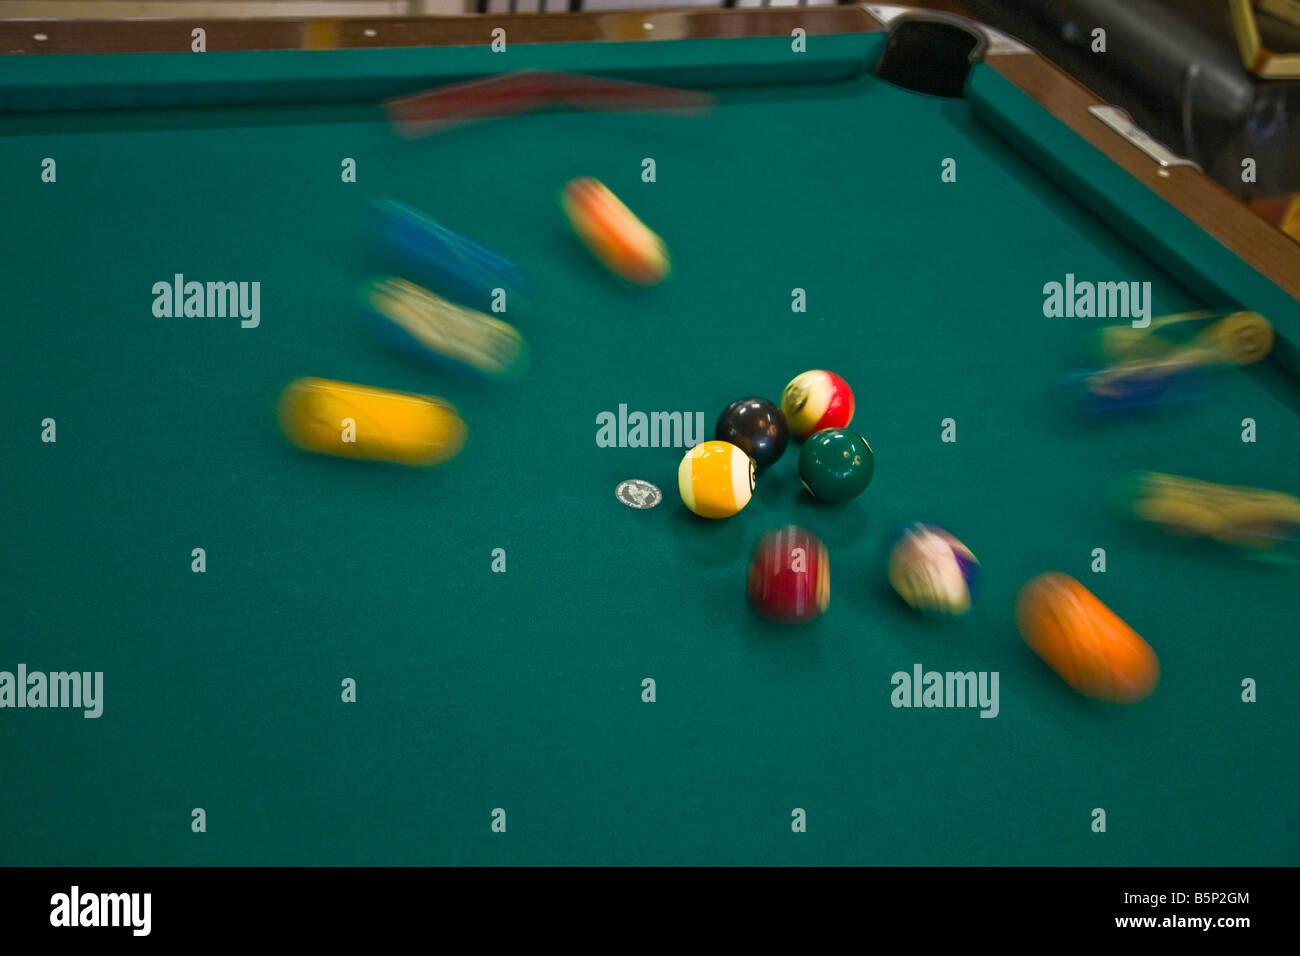 pool hall billiards cue green explode ball shoot concentrate - Stock Image